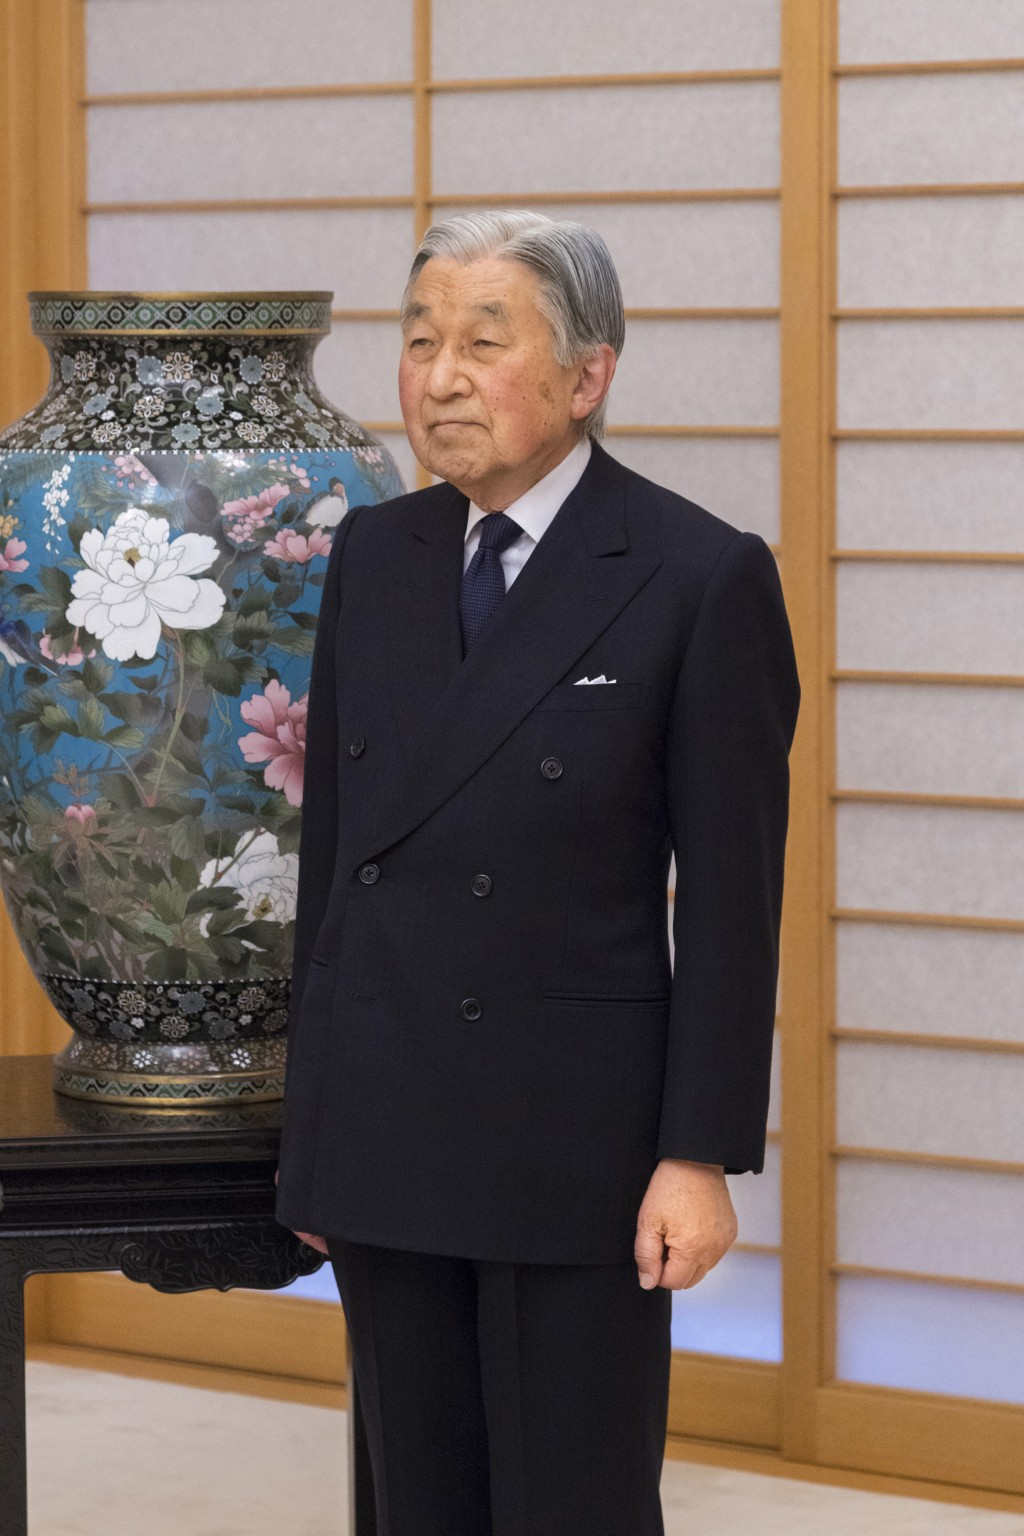 In this Dec. 6, 2017, photo provided by the Imperial Household Agency of Japan, Emperor Akihito poses for a photo at Imperial Palace in Tokyo. Akihito...